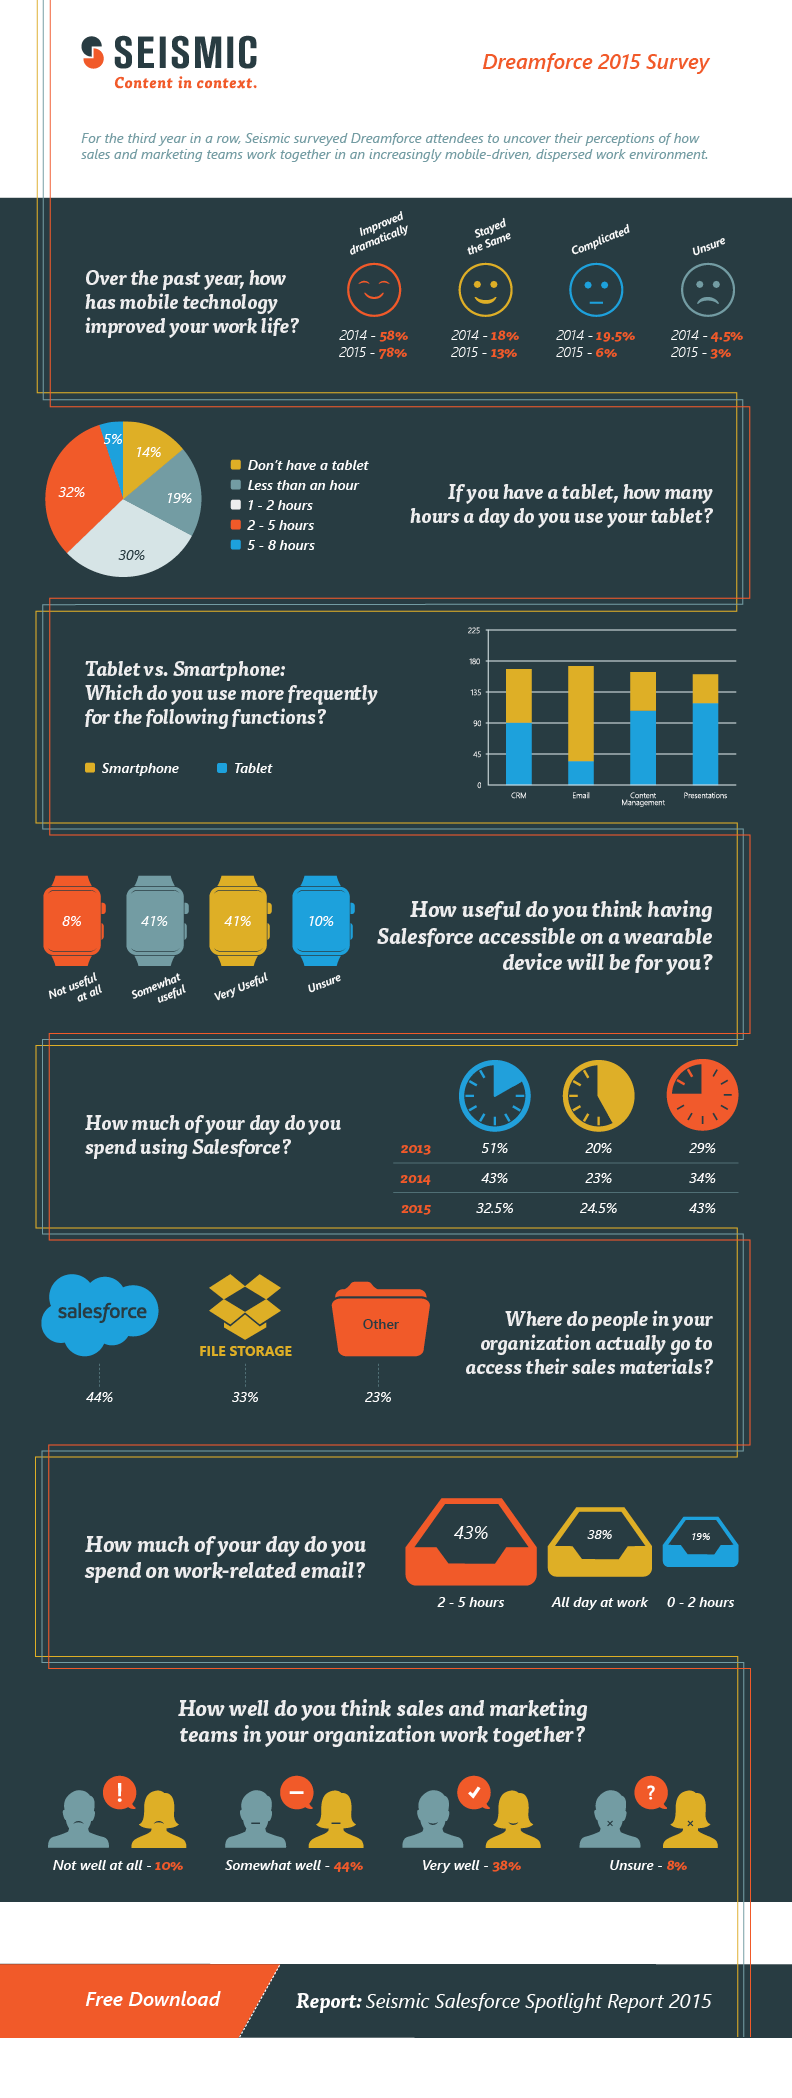 Dreamforce Survey: New Mobility, Salesforce and Email Usage Trends [Infographic]